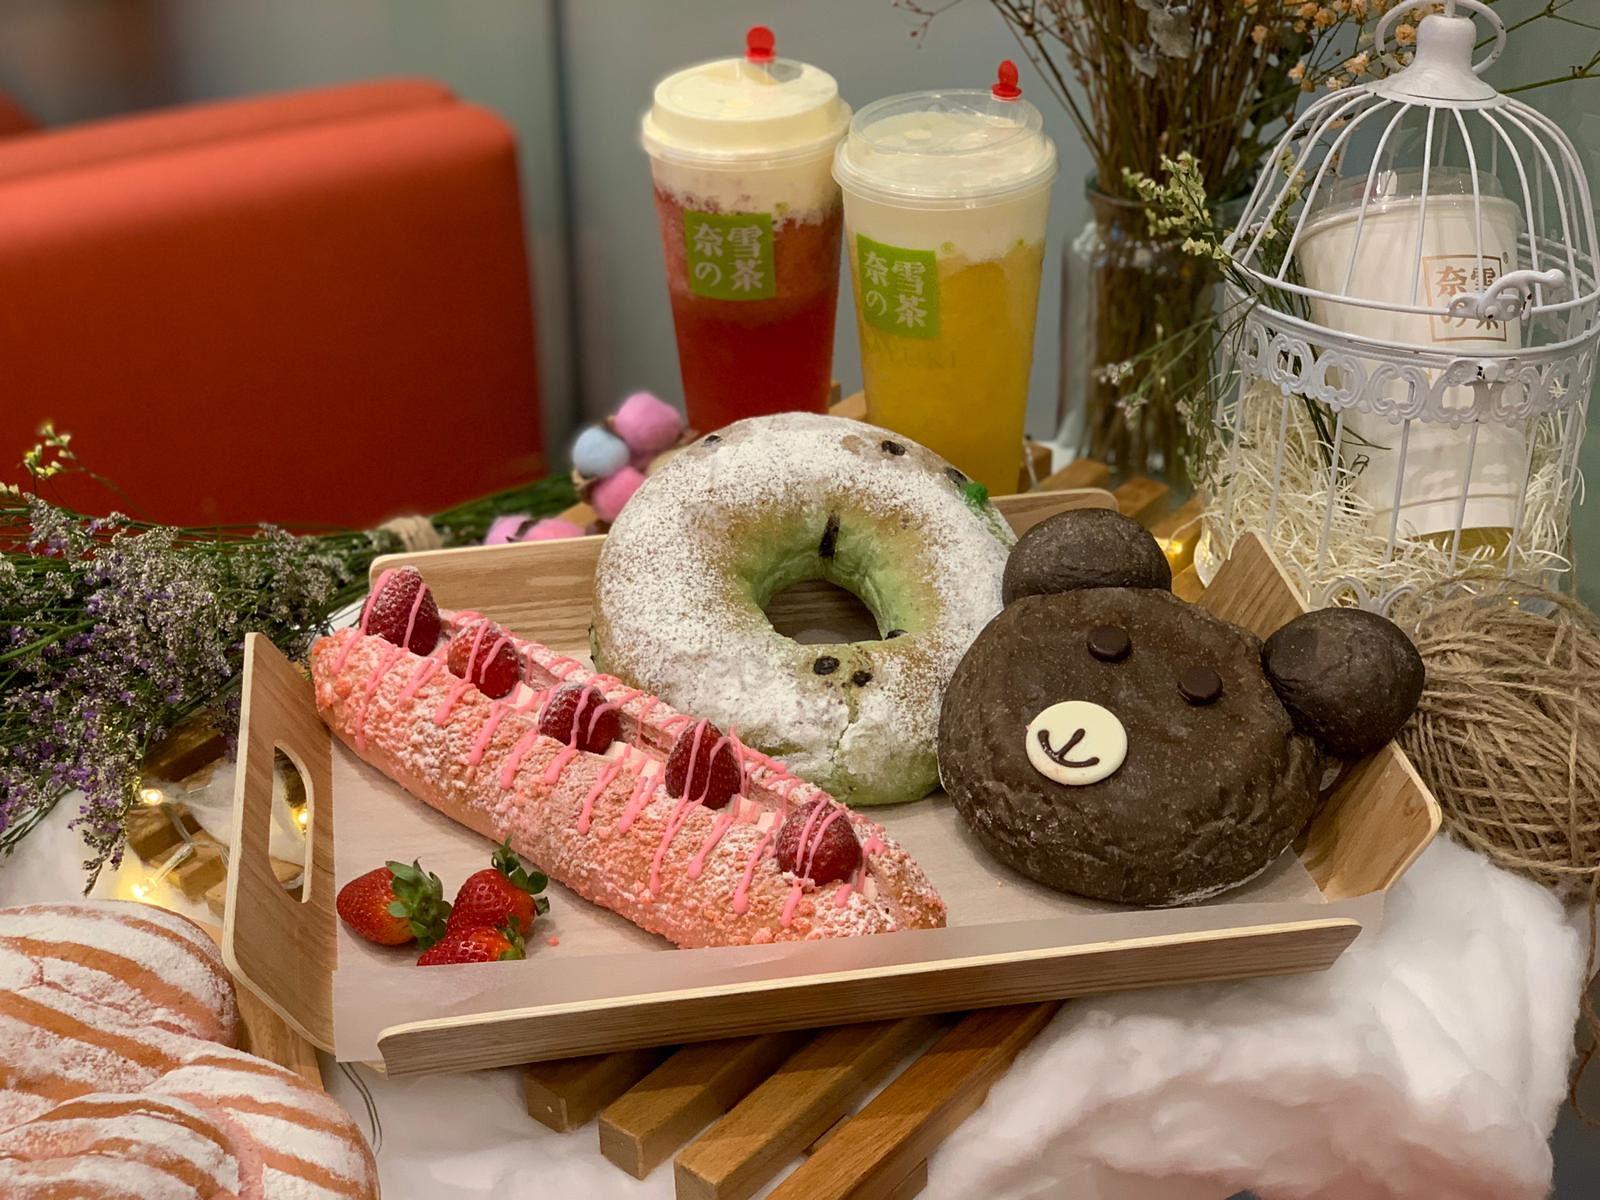 [SG EATS] Popular Cheese Tea Bakery Café Nayuki  (奈雪の茶) Opening Its First Overseas Store At VivoCity !